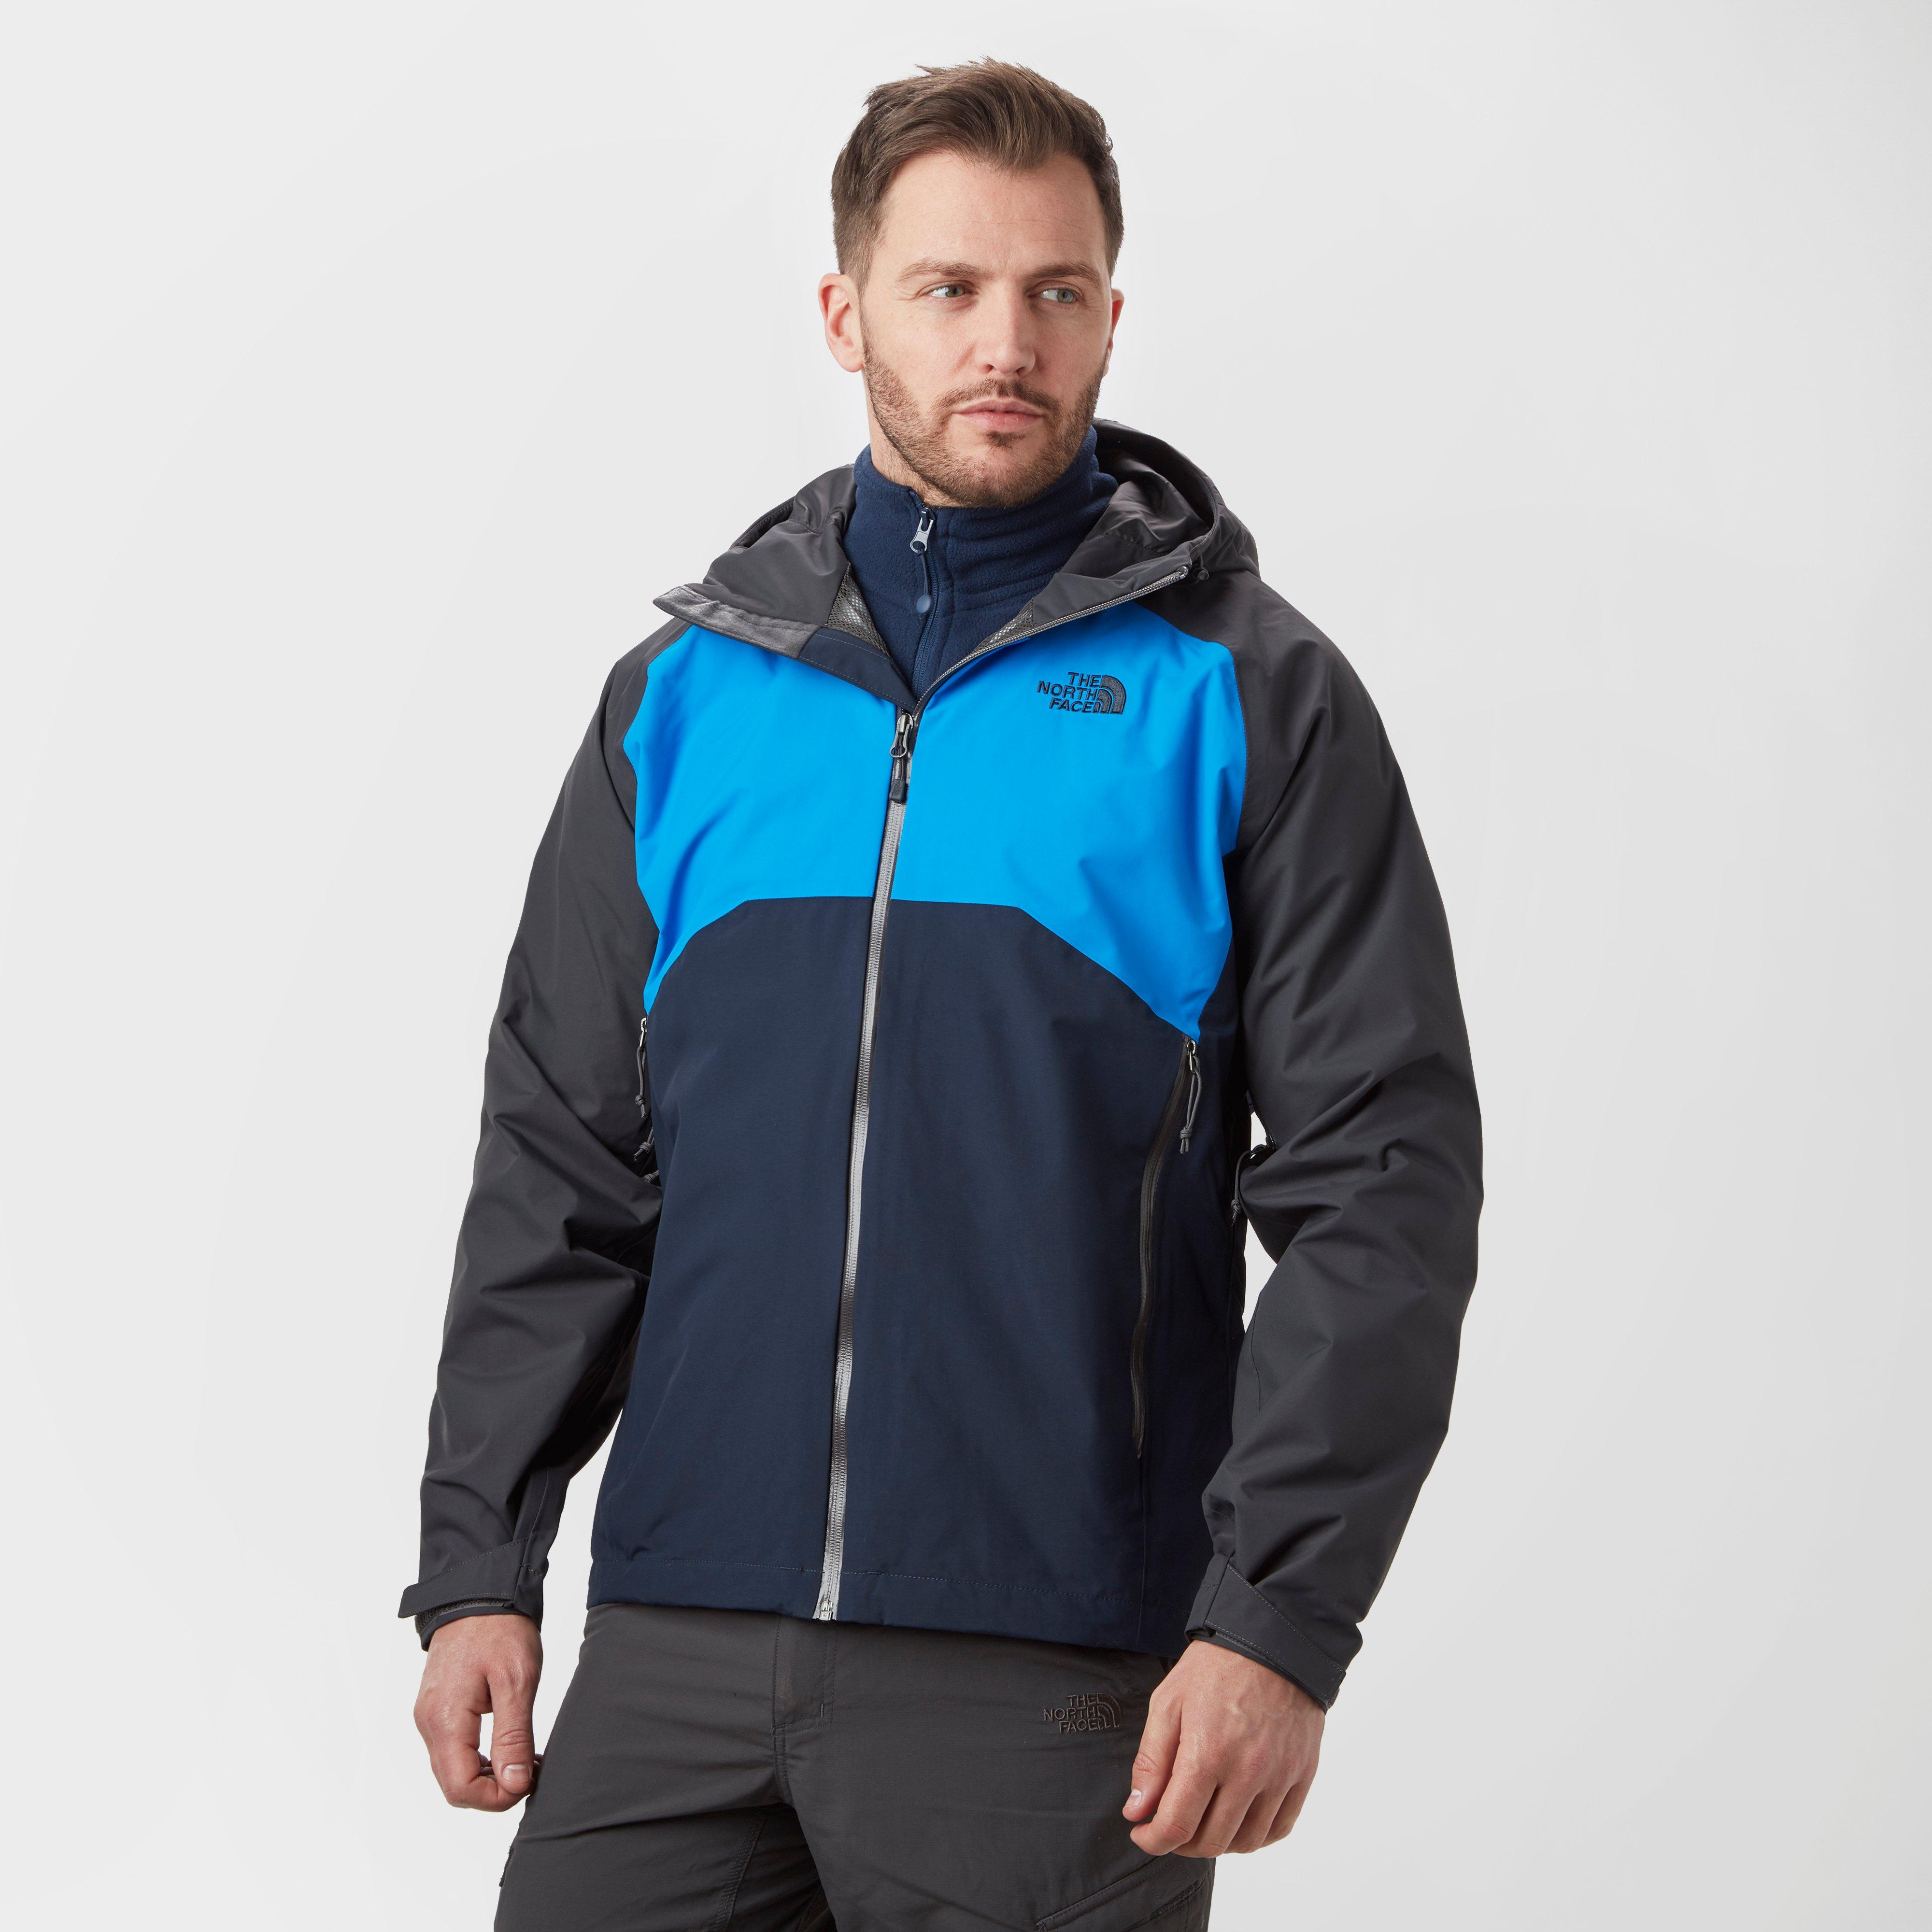 Next. scroll downscroll up · THE NORTH FACE logo 593c99676